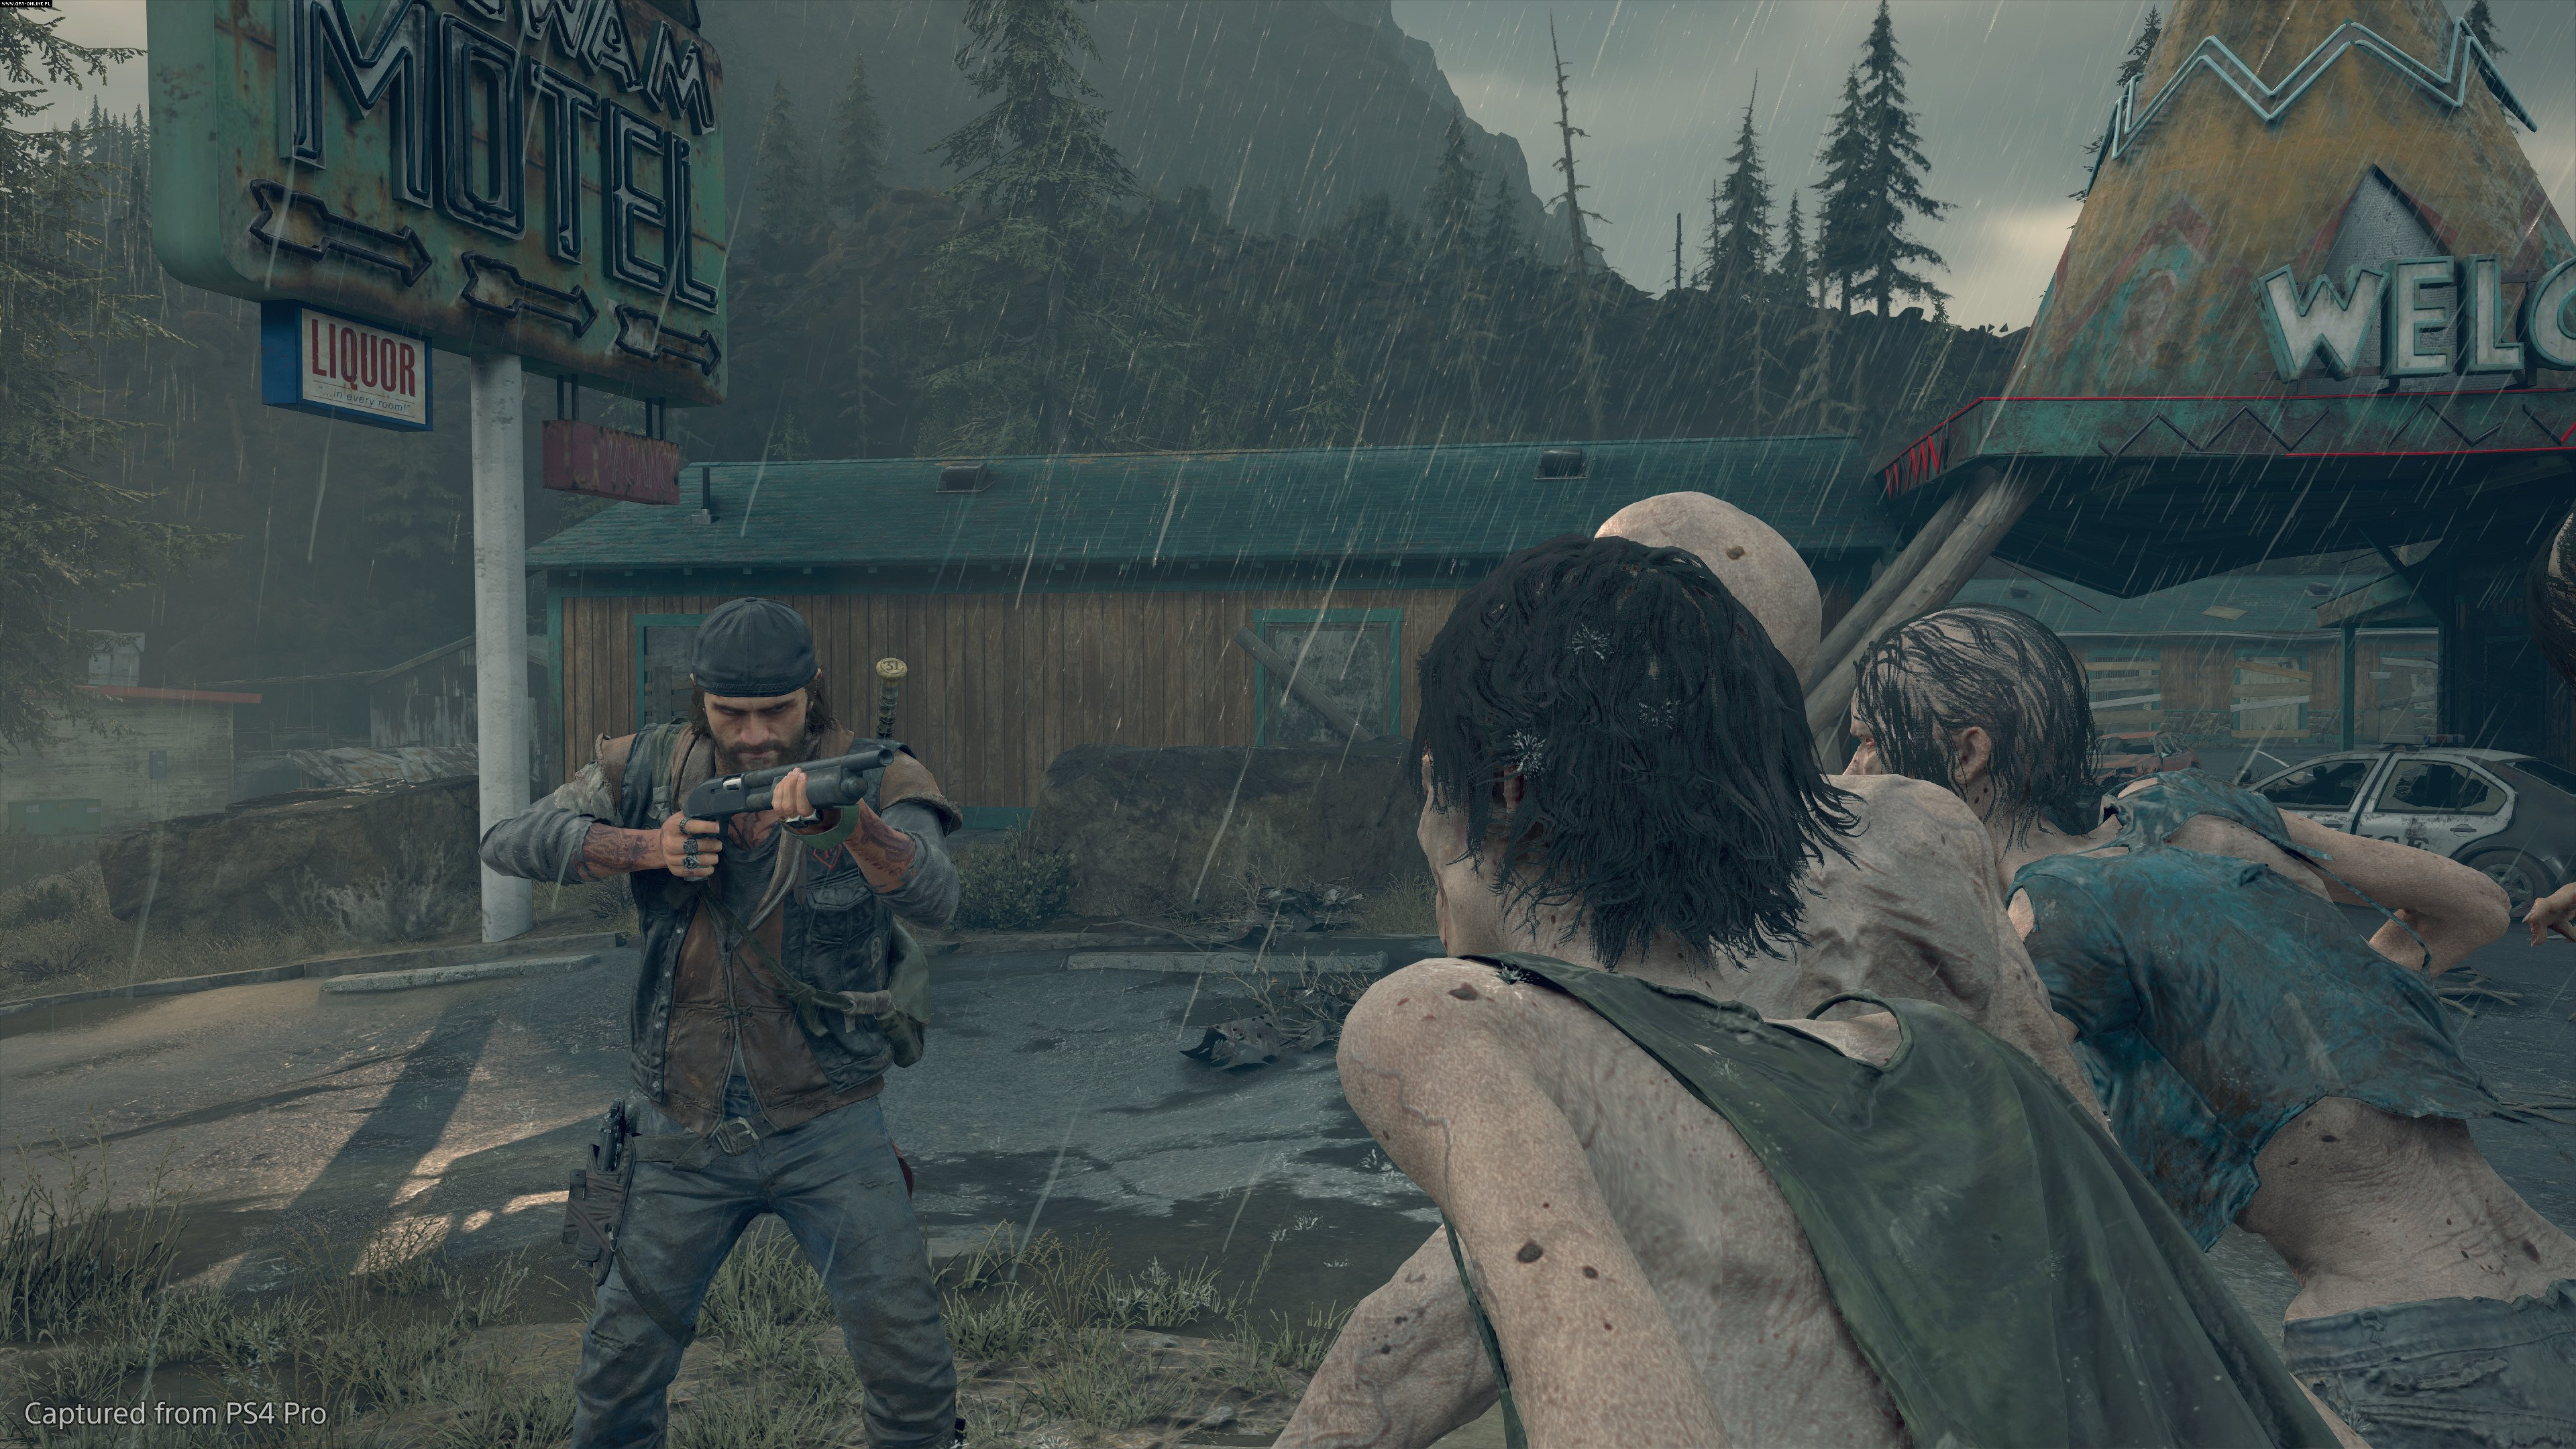 Days Gone PS4 Games Image 34/67, Bend Studio, Sony Interactive Entertainment